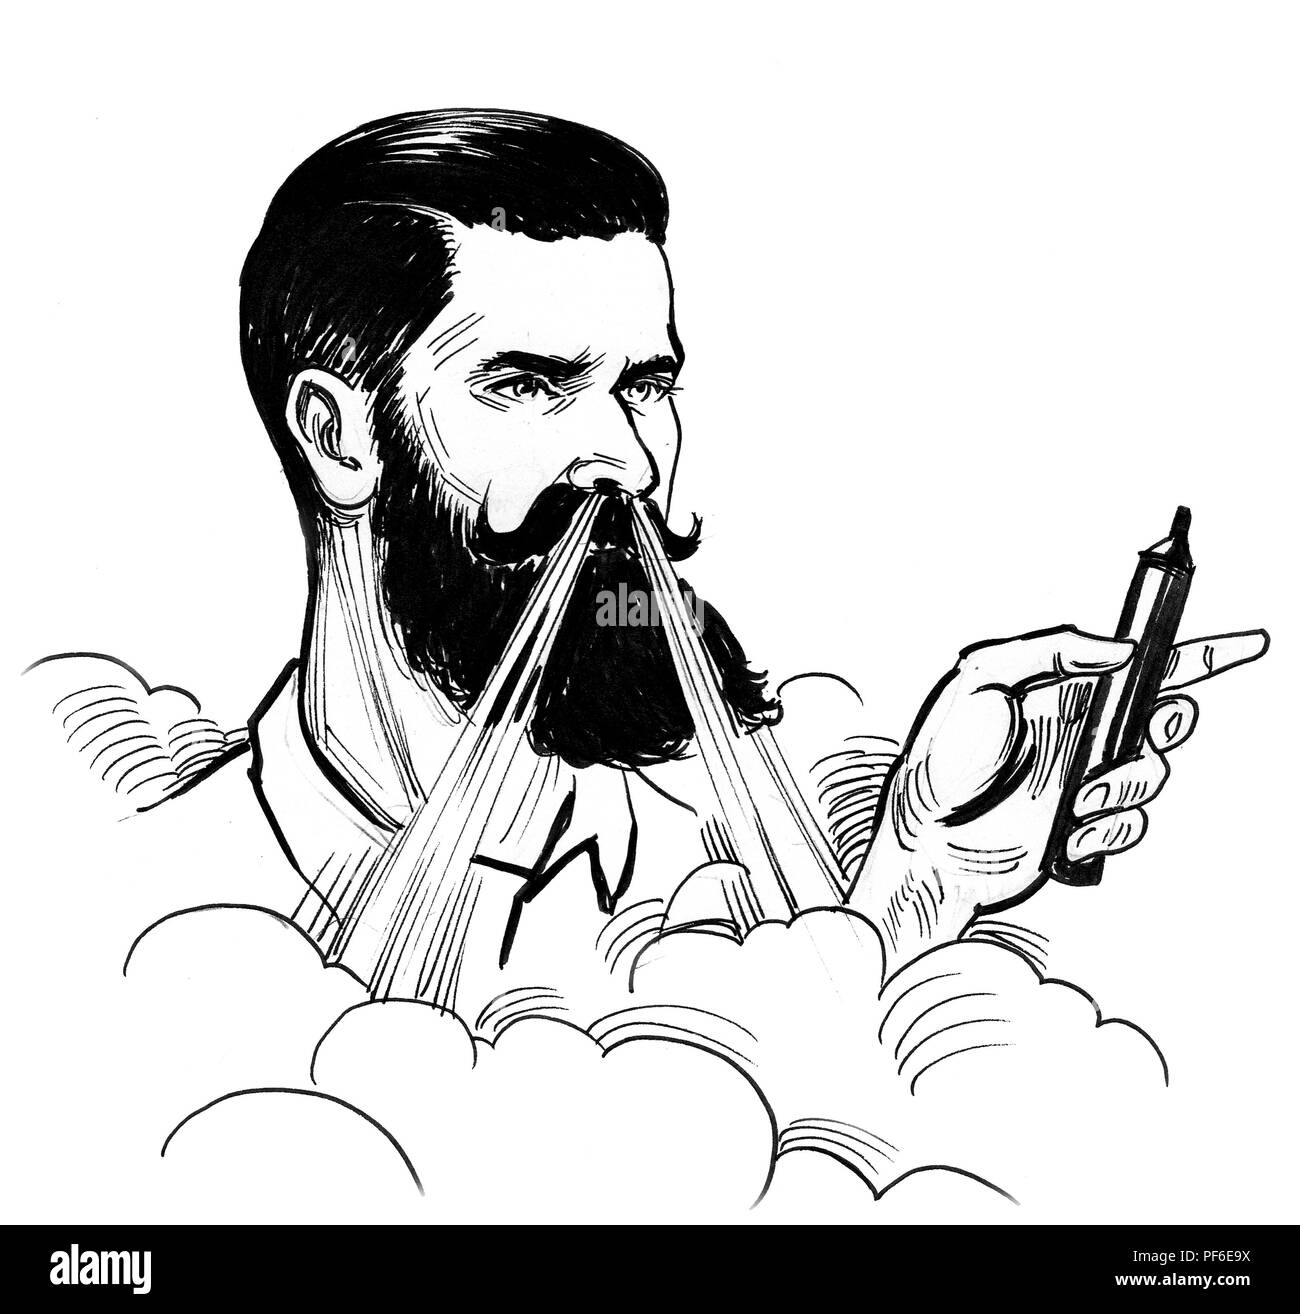 Bearded man with a vaporizer. Ink black and white illustration - Stock Image